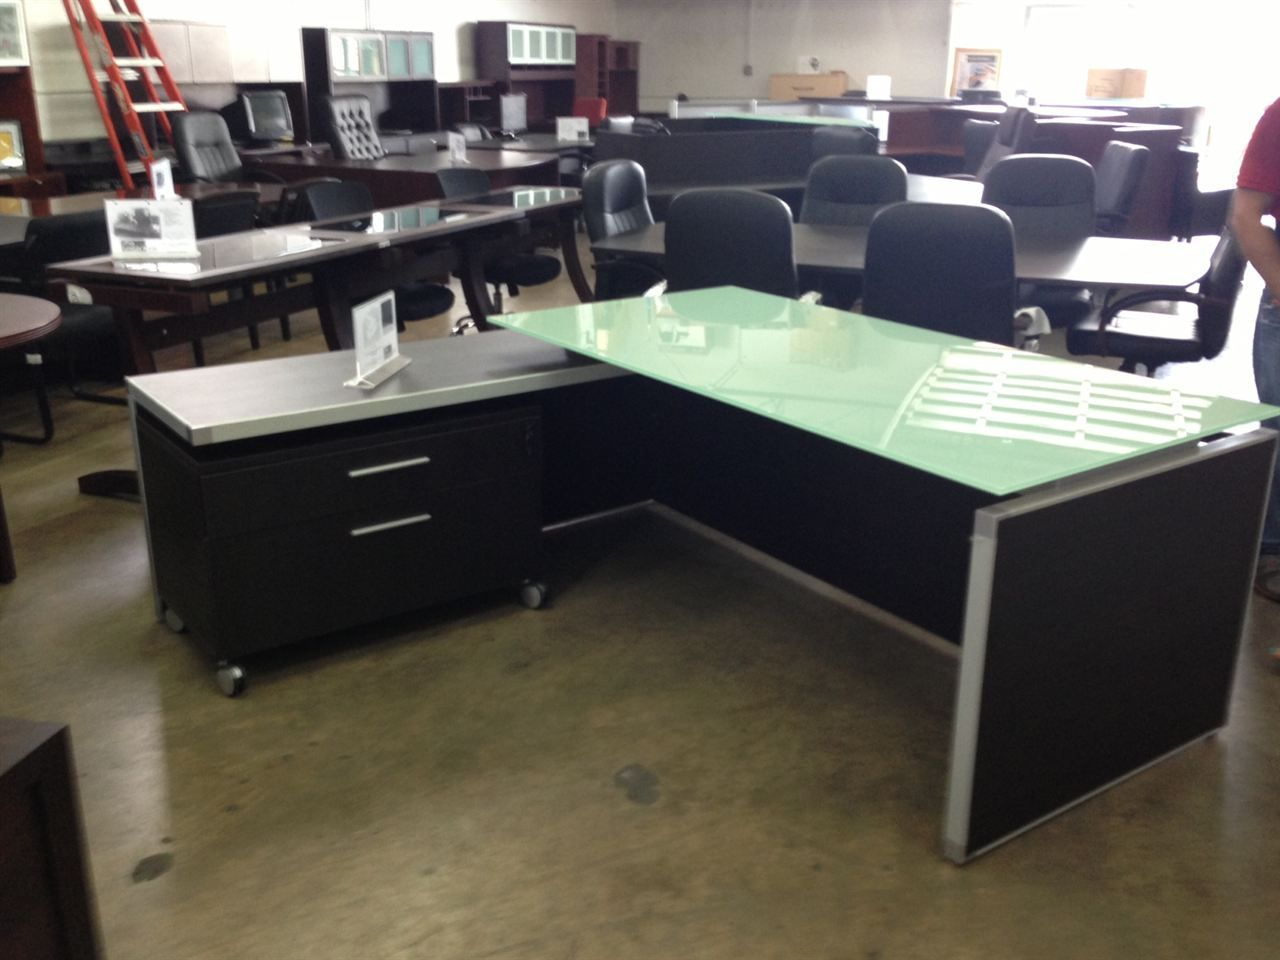 Executive L Shaped Desk   Modern Home Office Furniture Check More At  Http://michael Malarkey.com/executive L Shaped Desk/